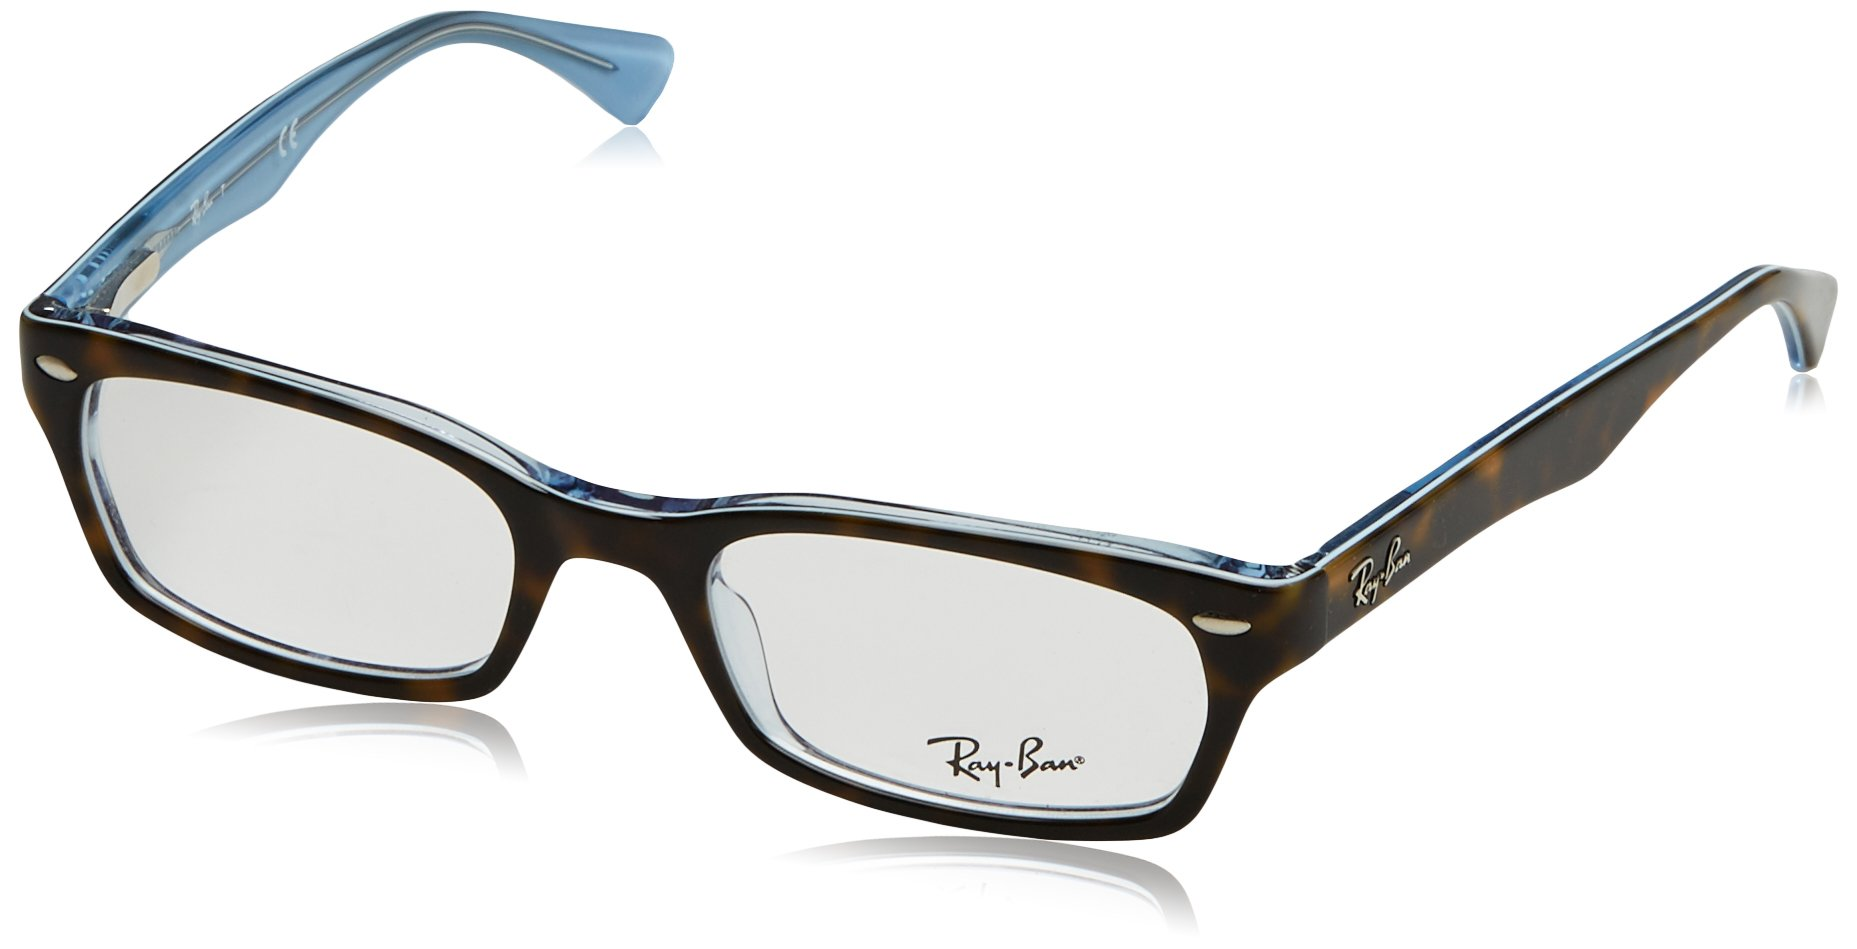 Ray-Ban Women's 0RX5150 50mm Top Havana/Transparent Blue Reading Glasses by Ray-Ban